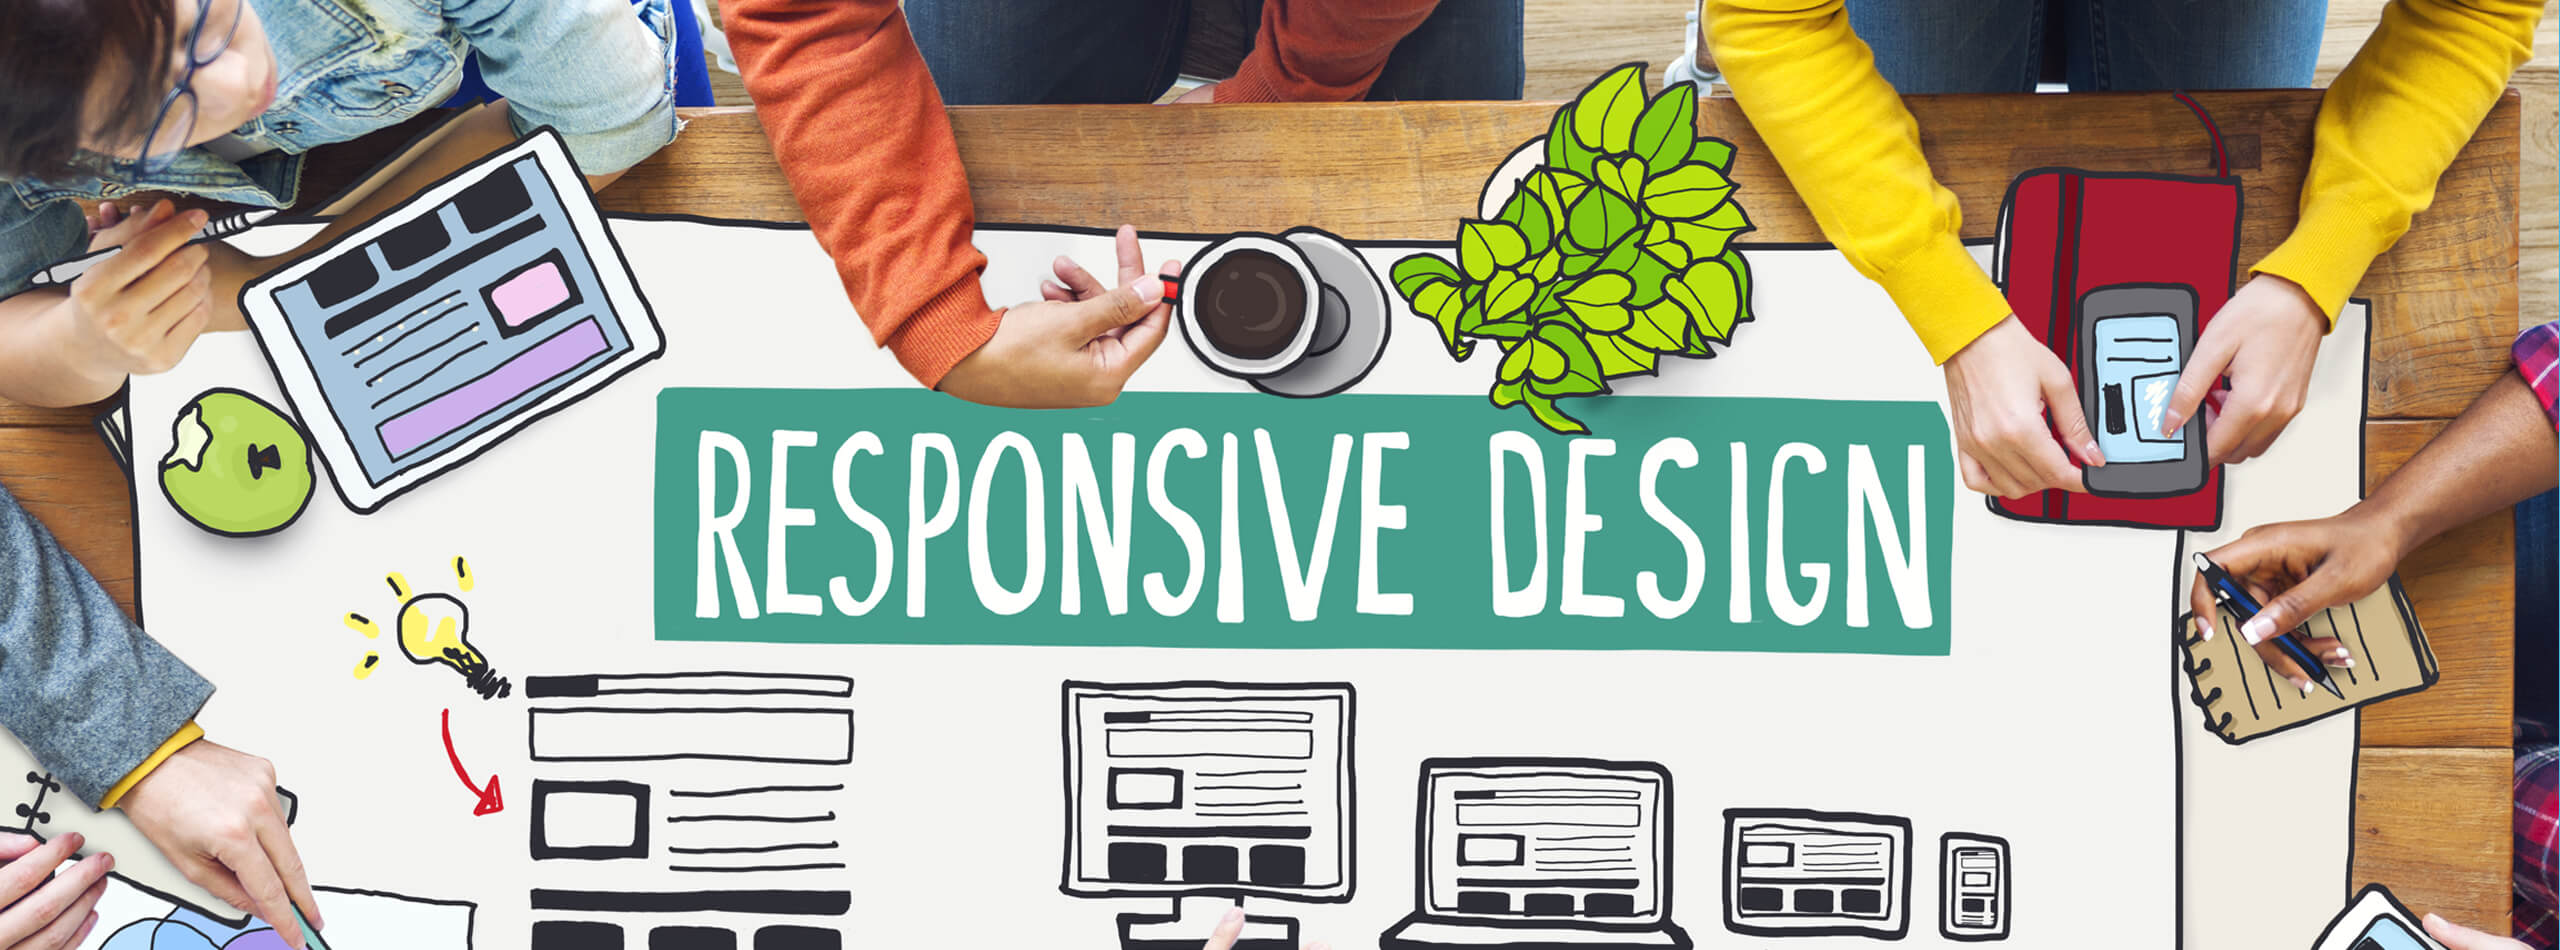 Responsive design: sketch visual